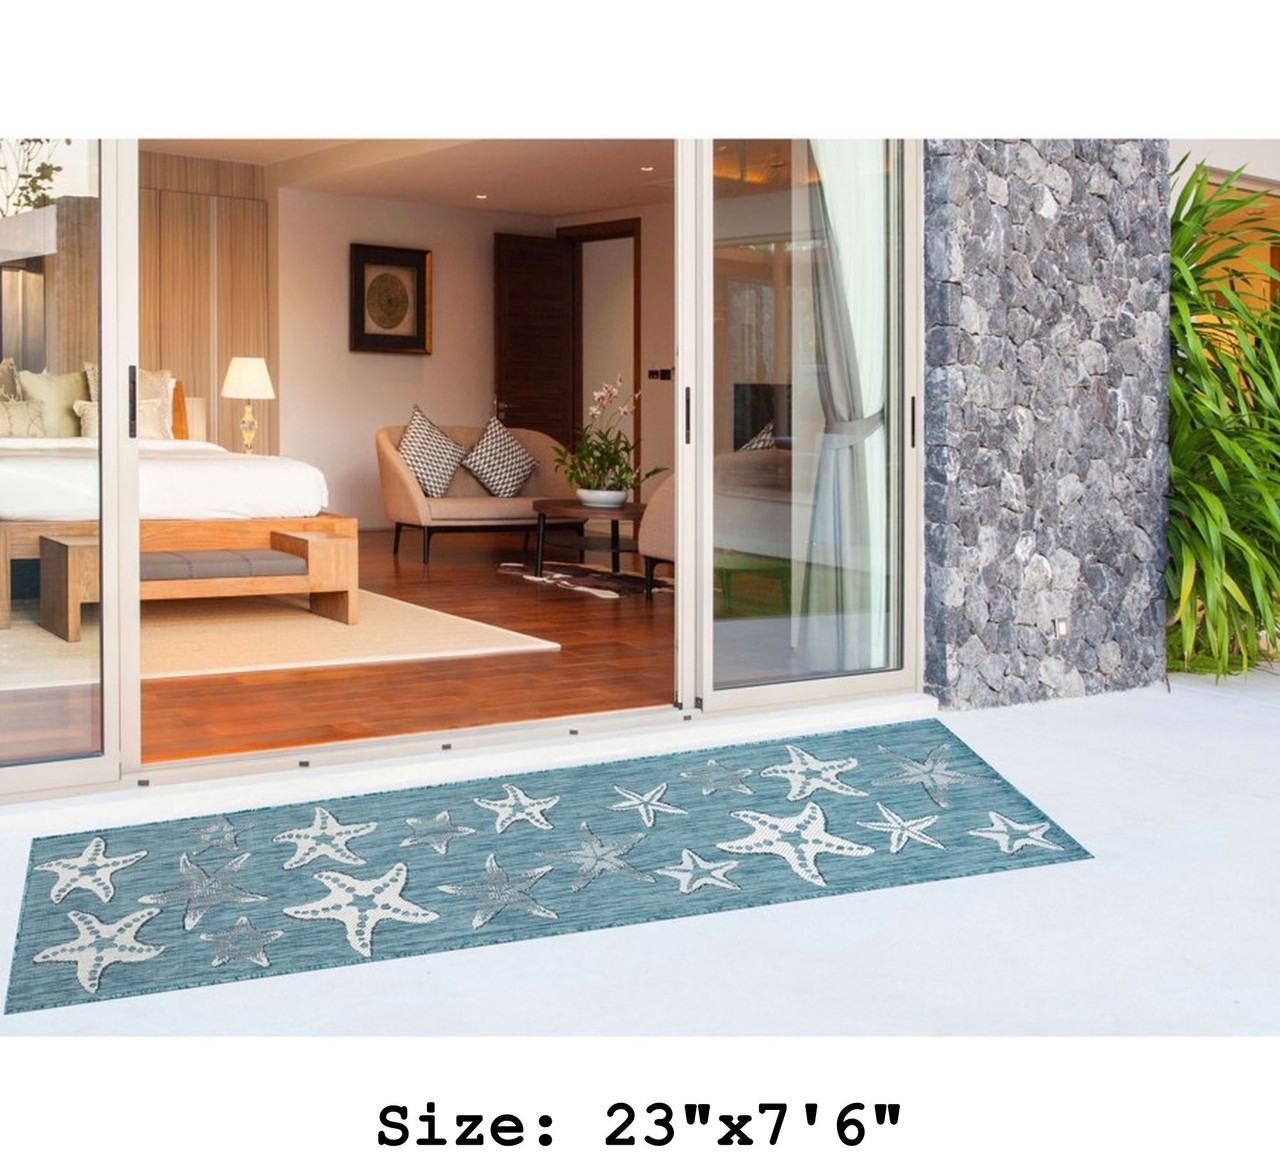 Aqua Carmel Starfish Indoor/Outdoor Rug - Runner Lifestyle